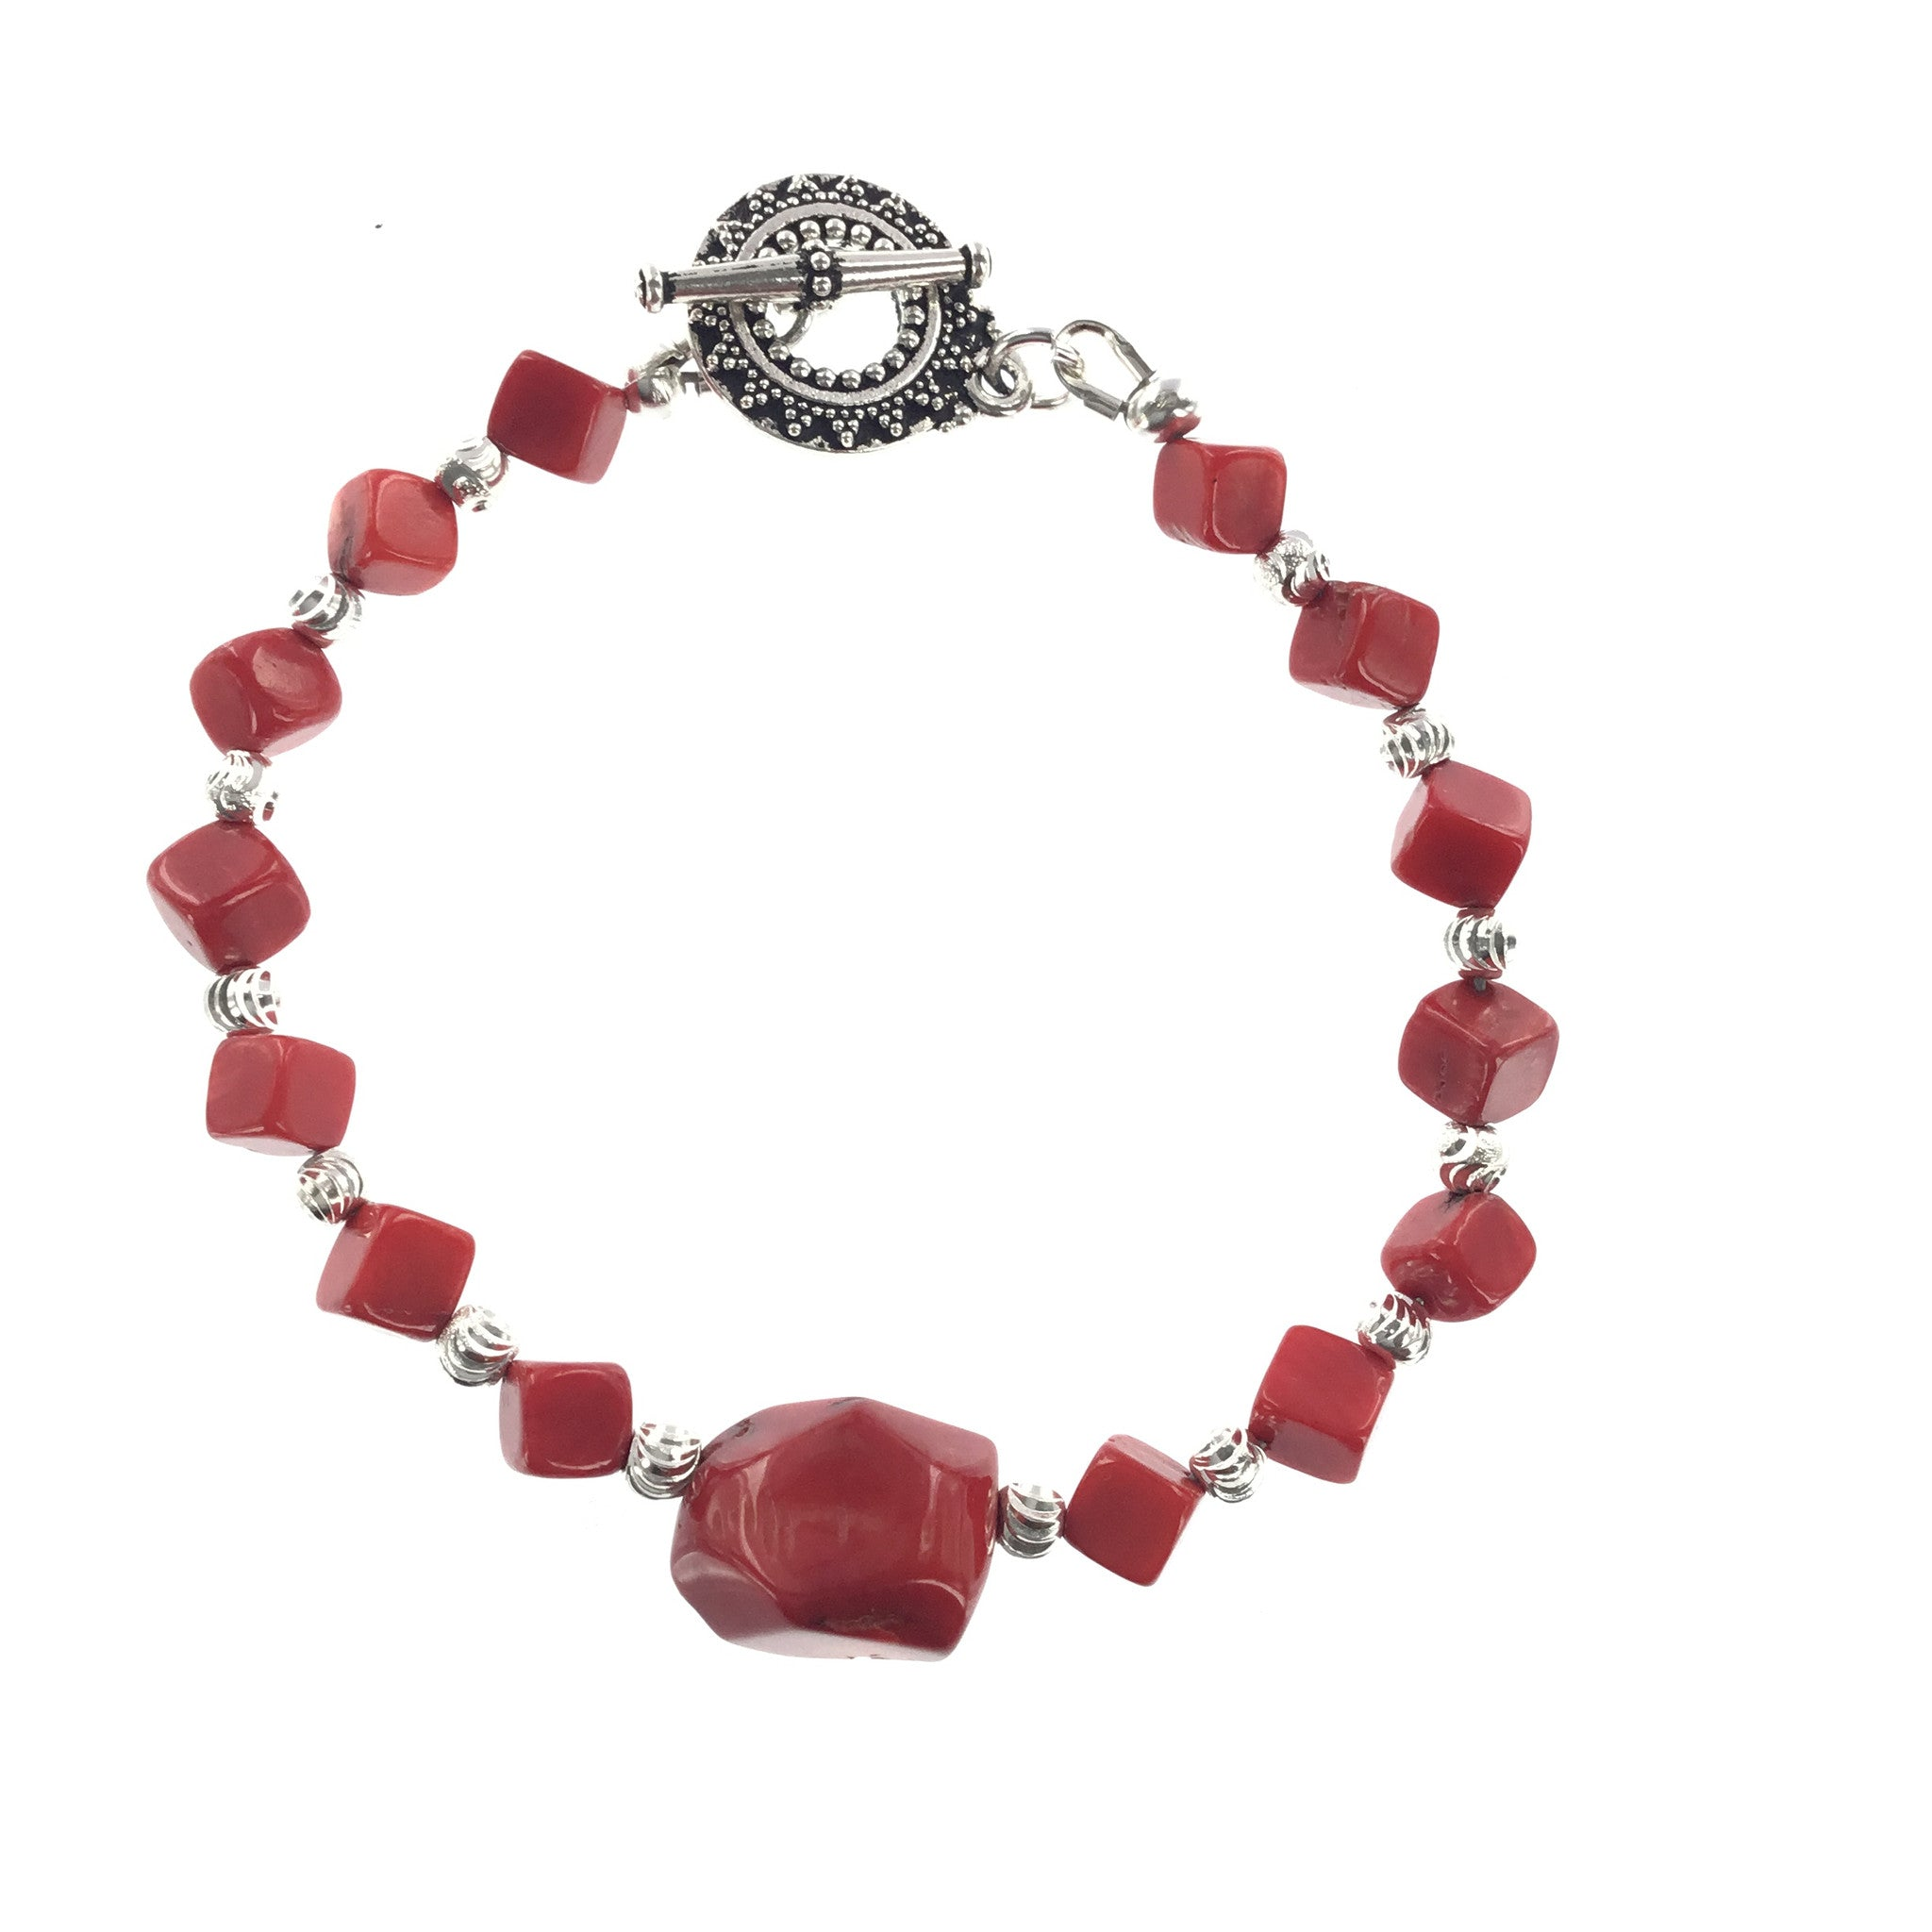 Red Coral and Silver Bracelet - Real Chic Boutique  - 3